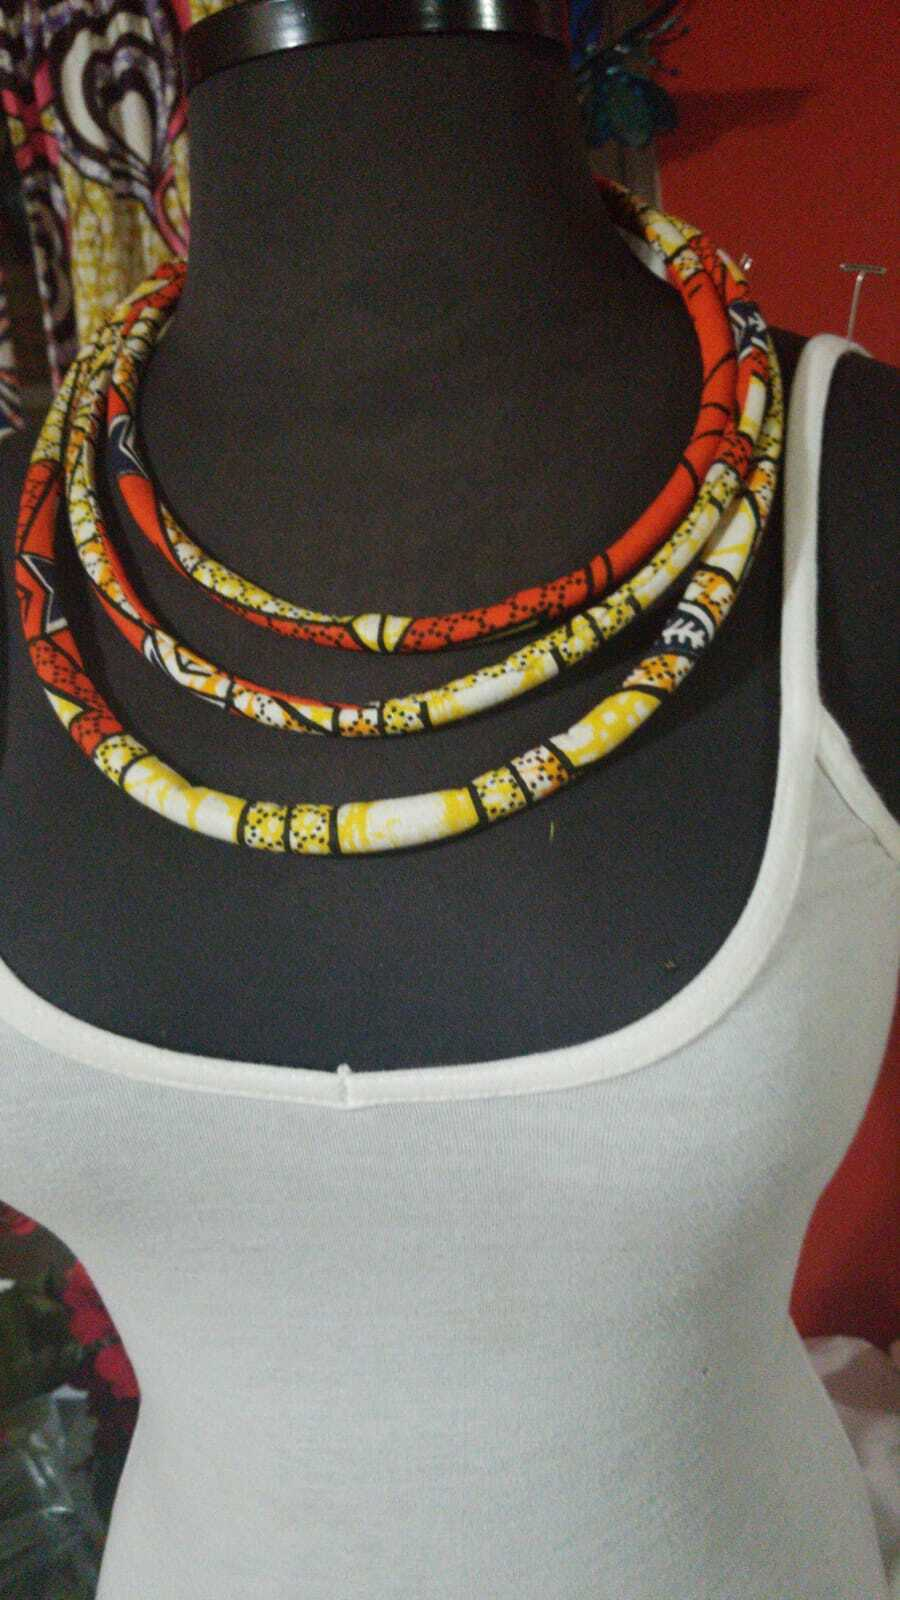 3 strand Orange Multi African Print rope Necklace $15